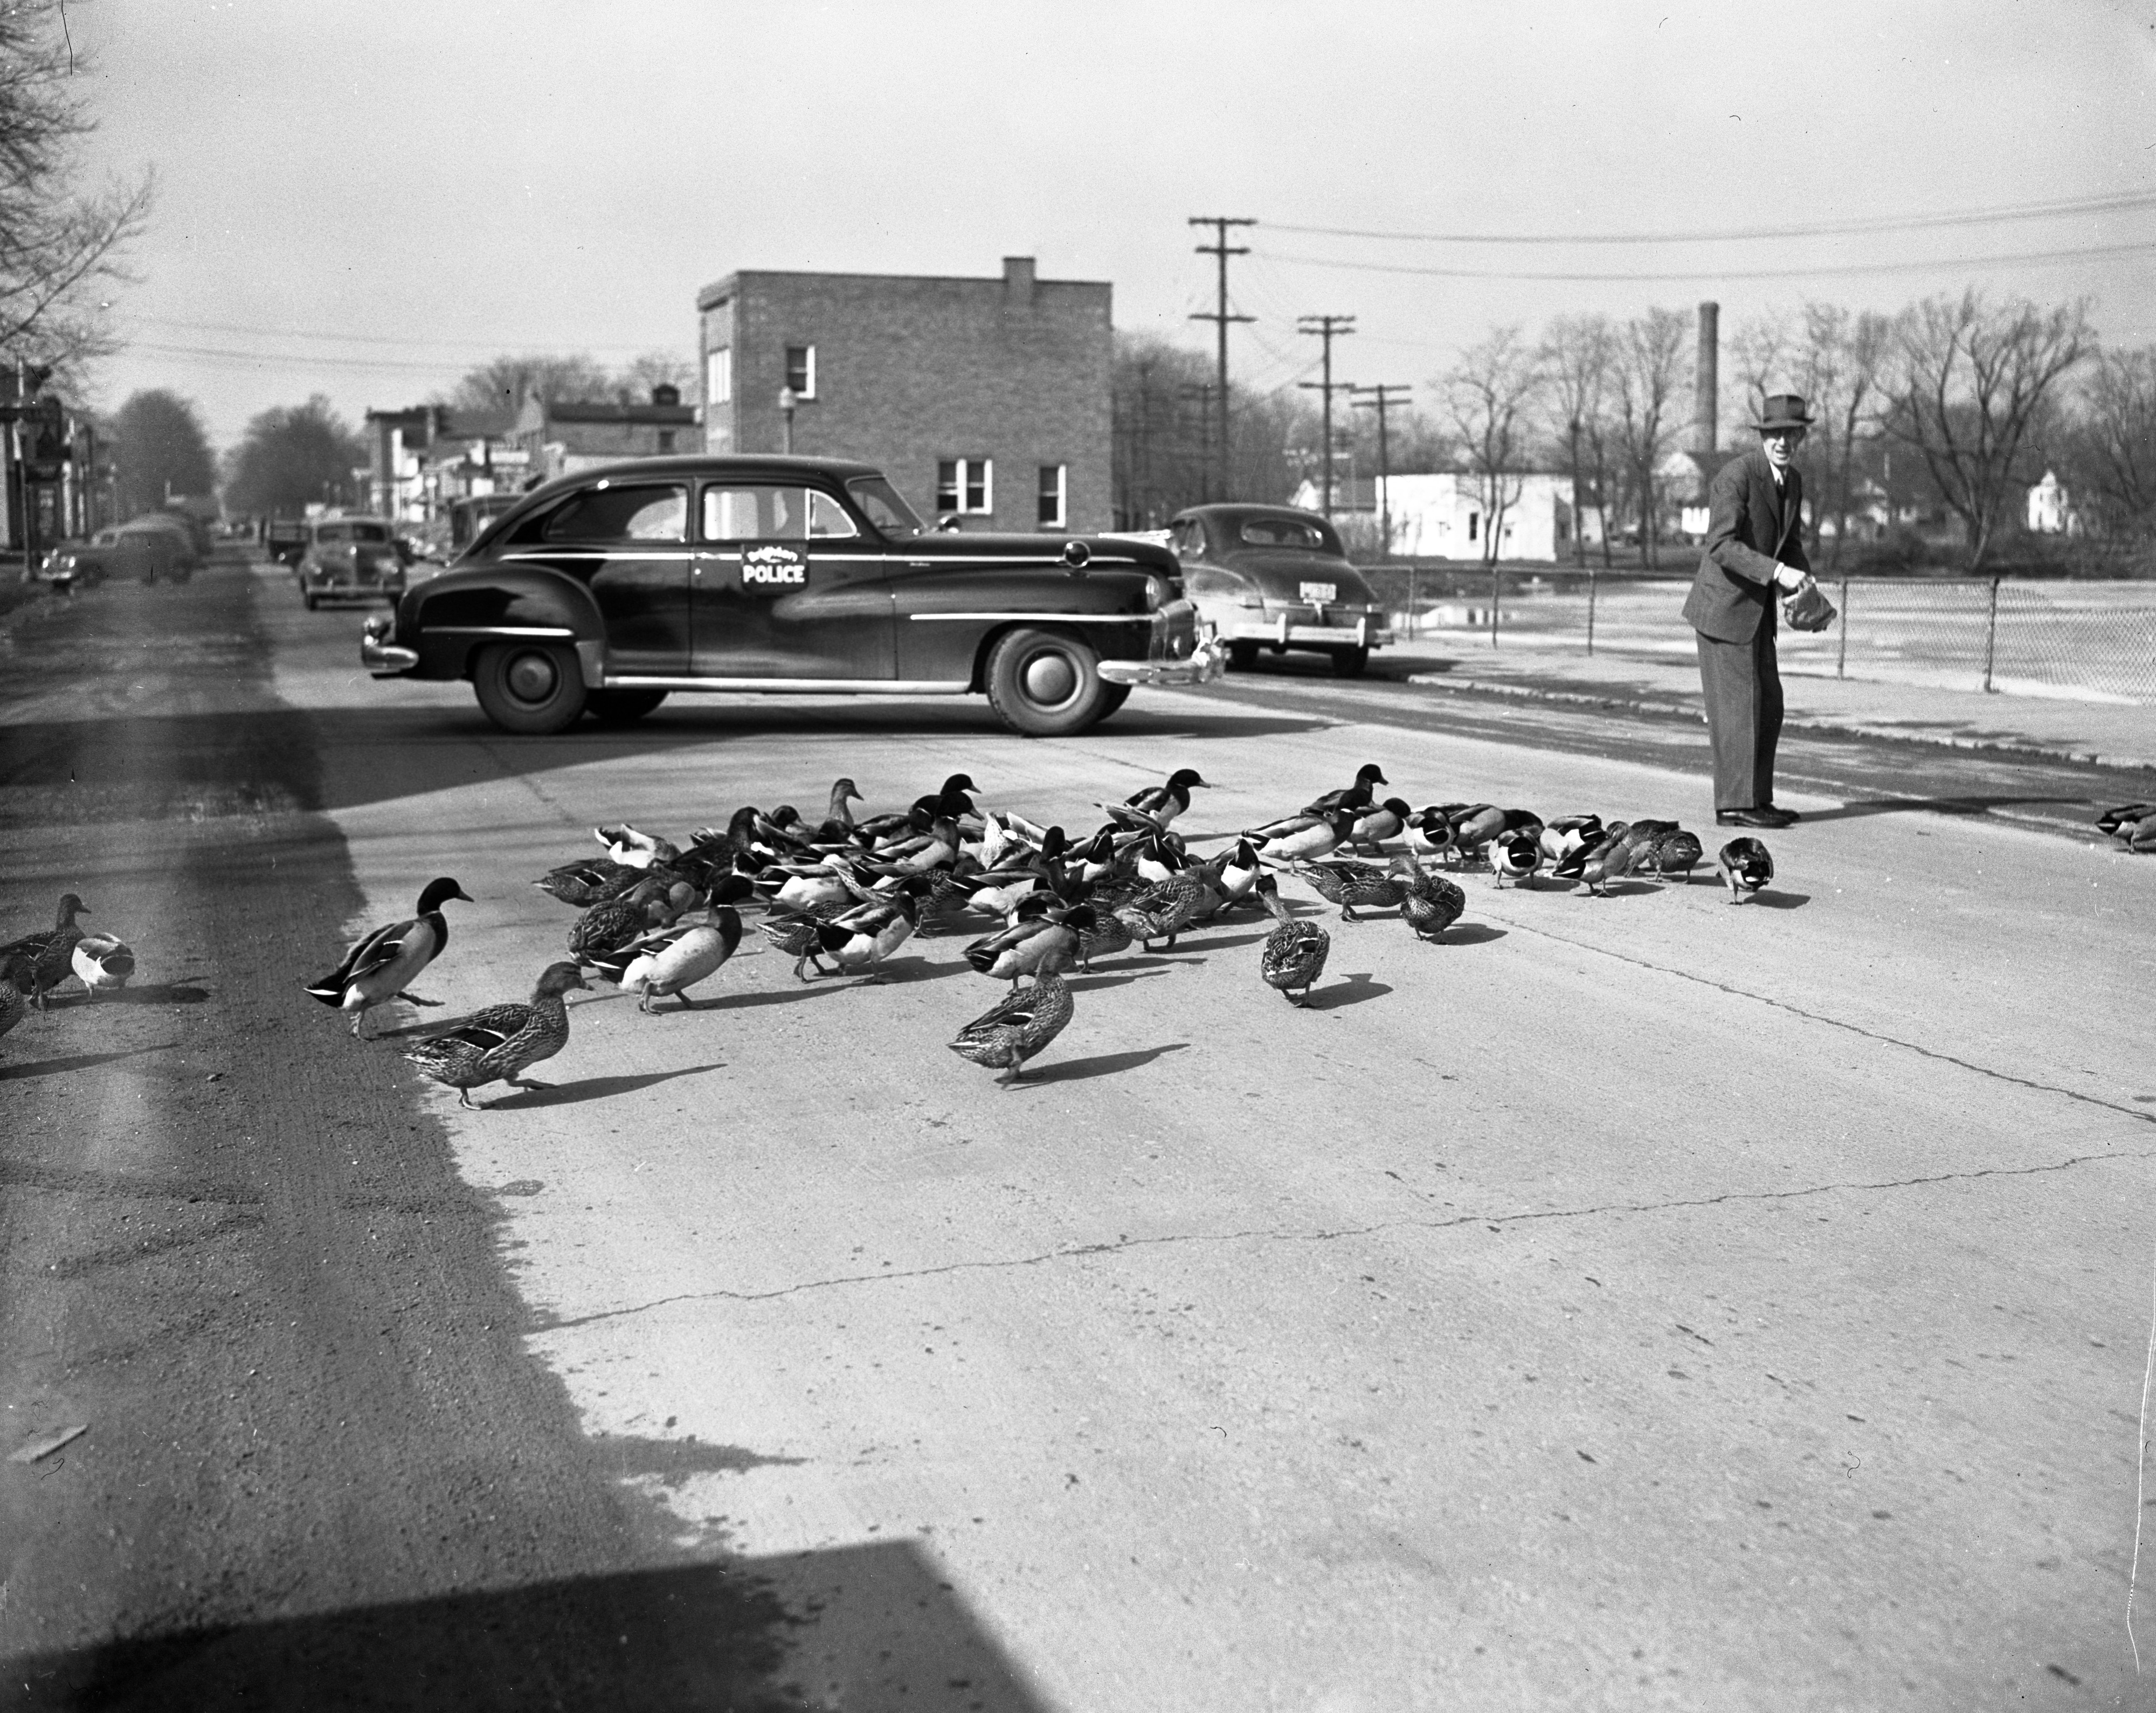 Ducks Migrate Across Main Street In Brighton, February 1948 image